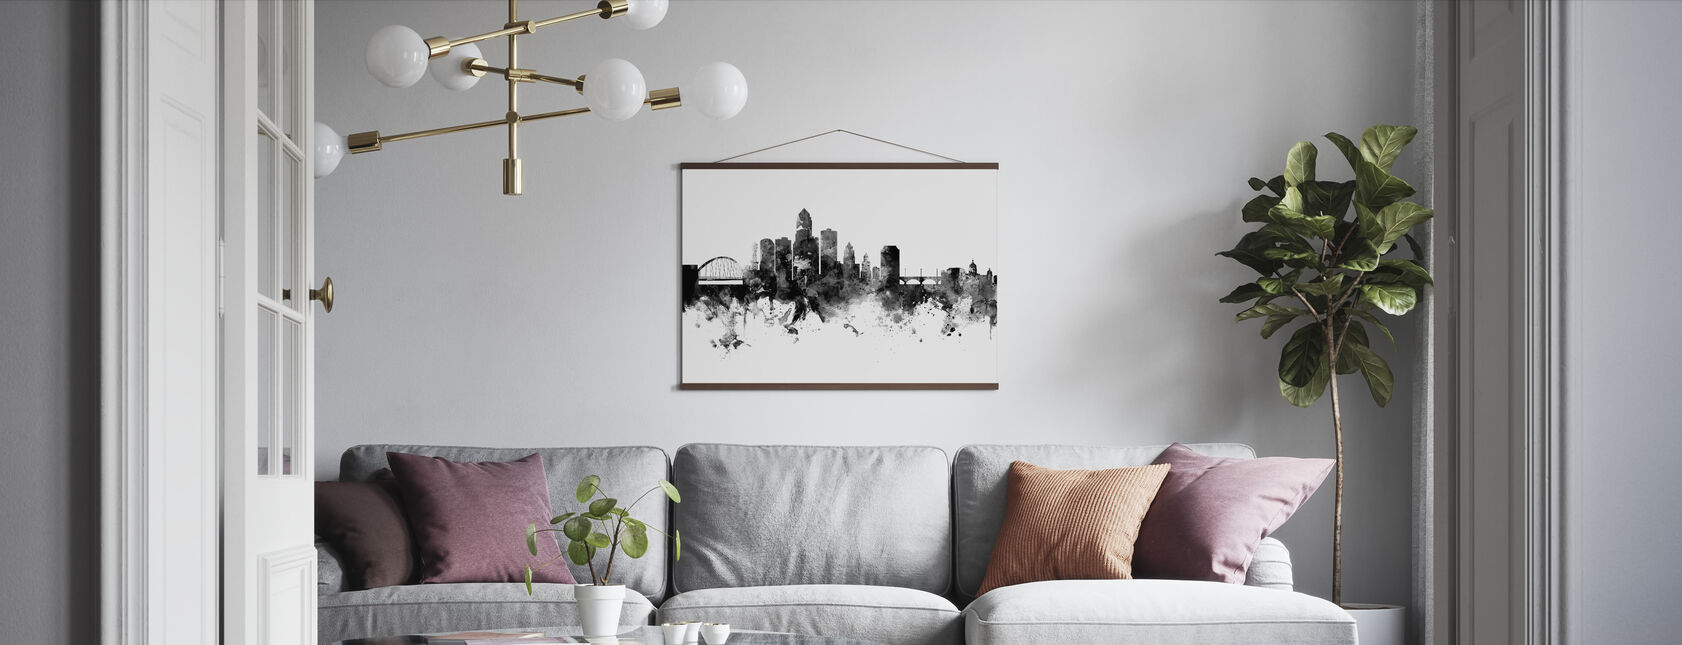 Des Moines Iowa Skyline, black and white - Poster - Living Room